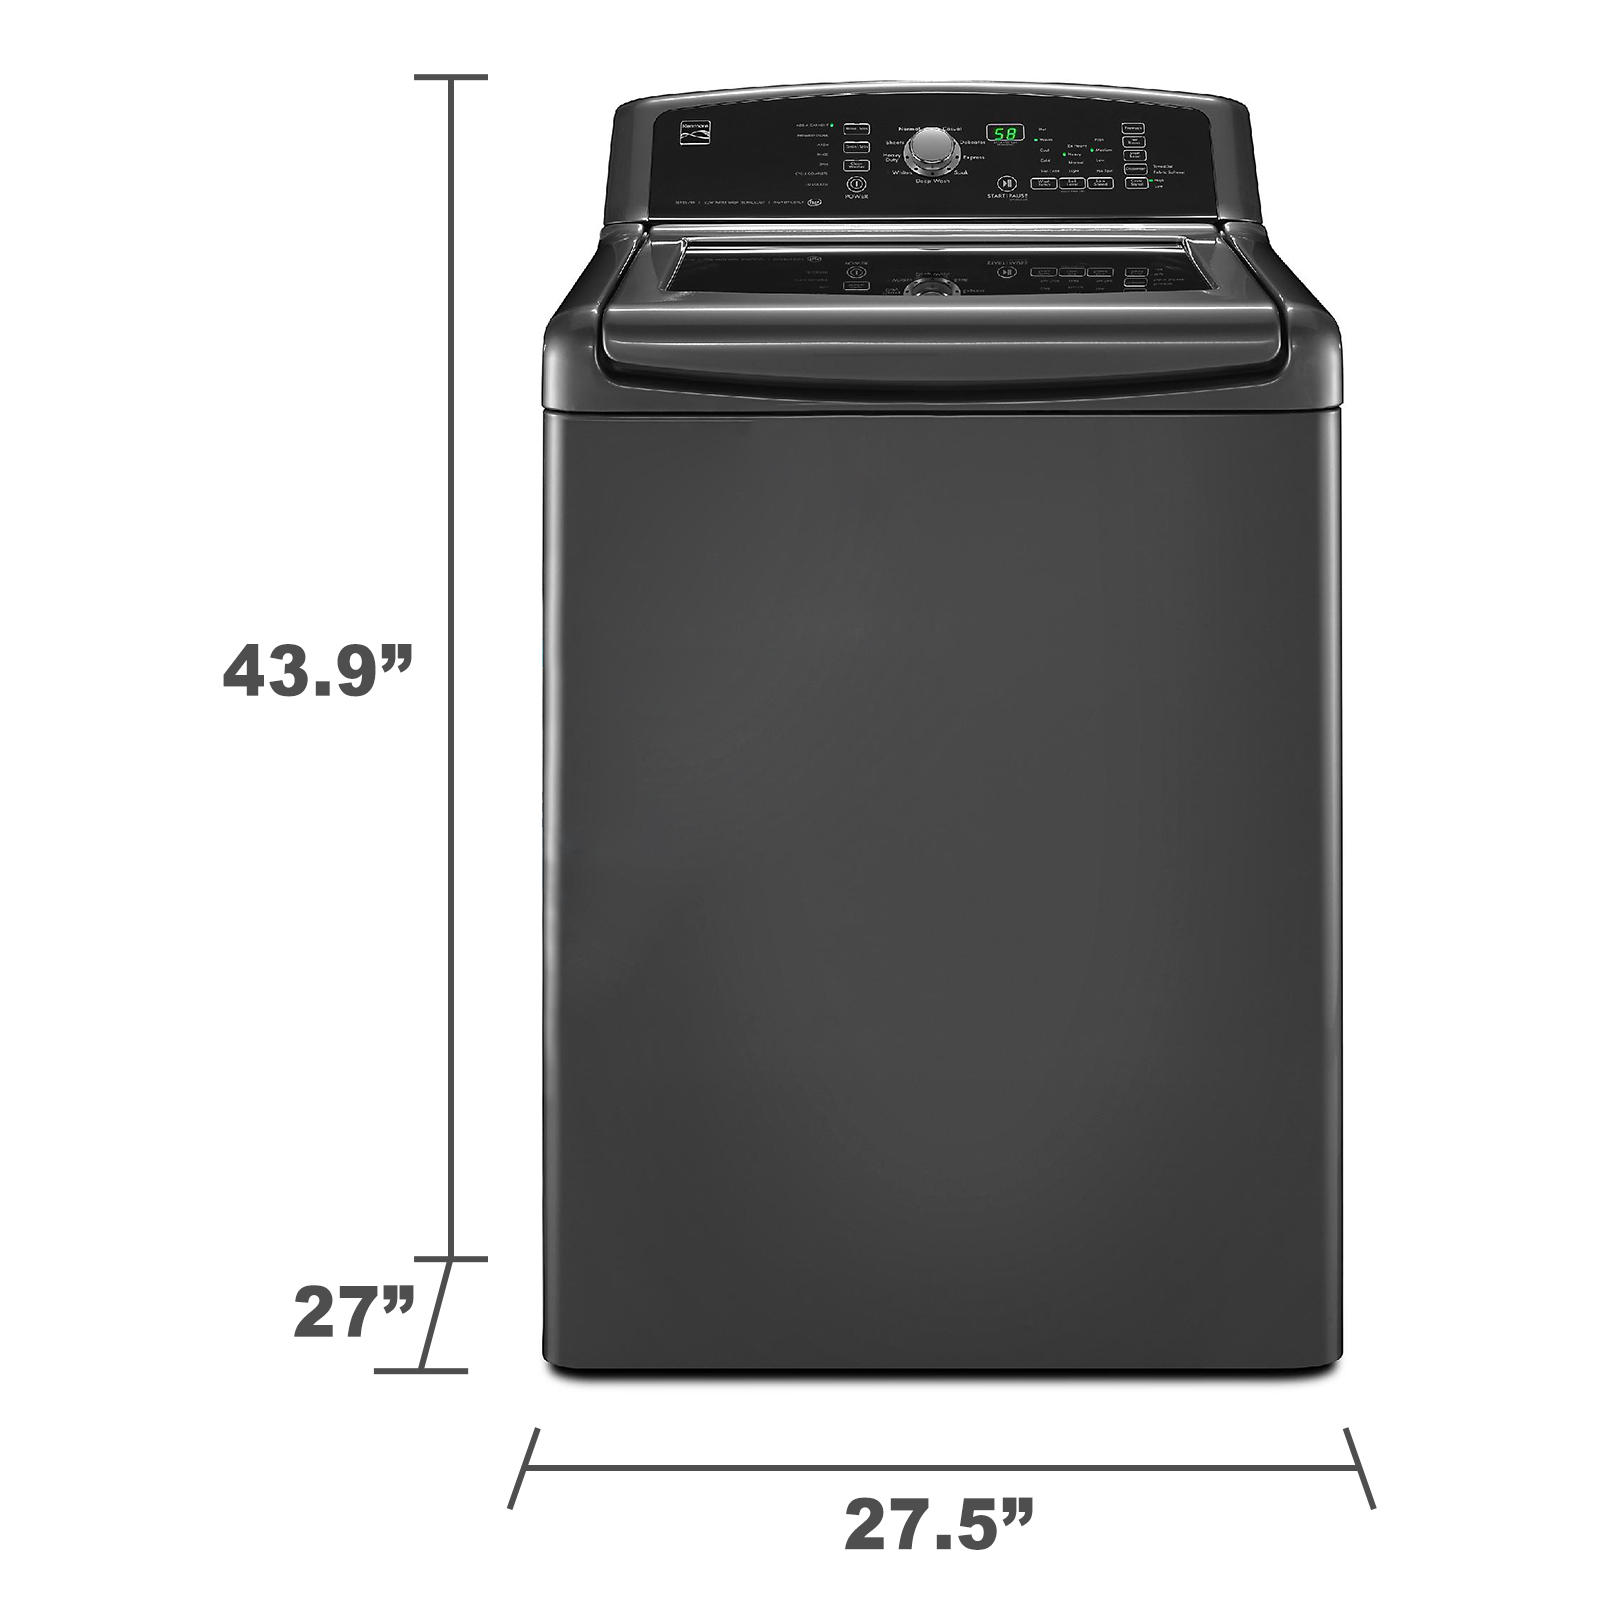 Kenmore 28103 4.5 cu. ft. High-Efficiency Top-Load Washer w/ Express Cycle - Metallic